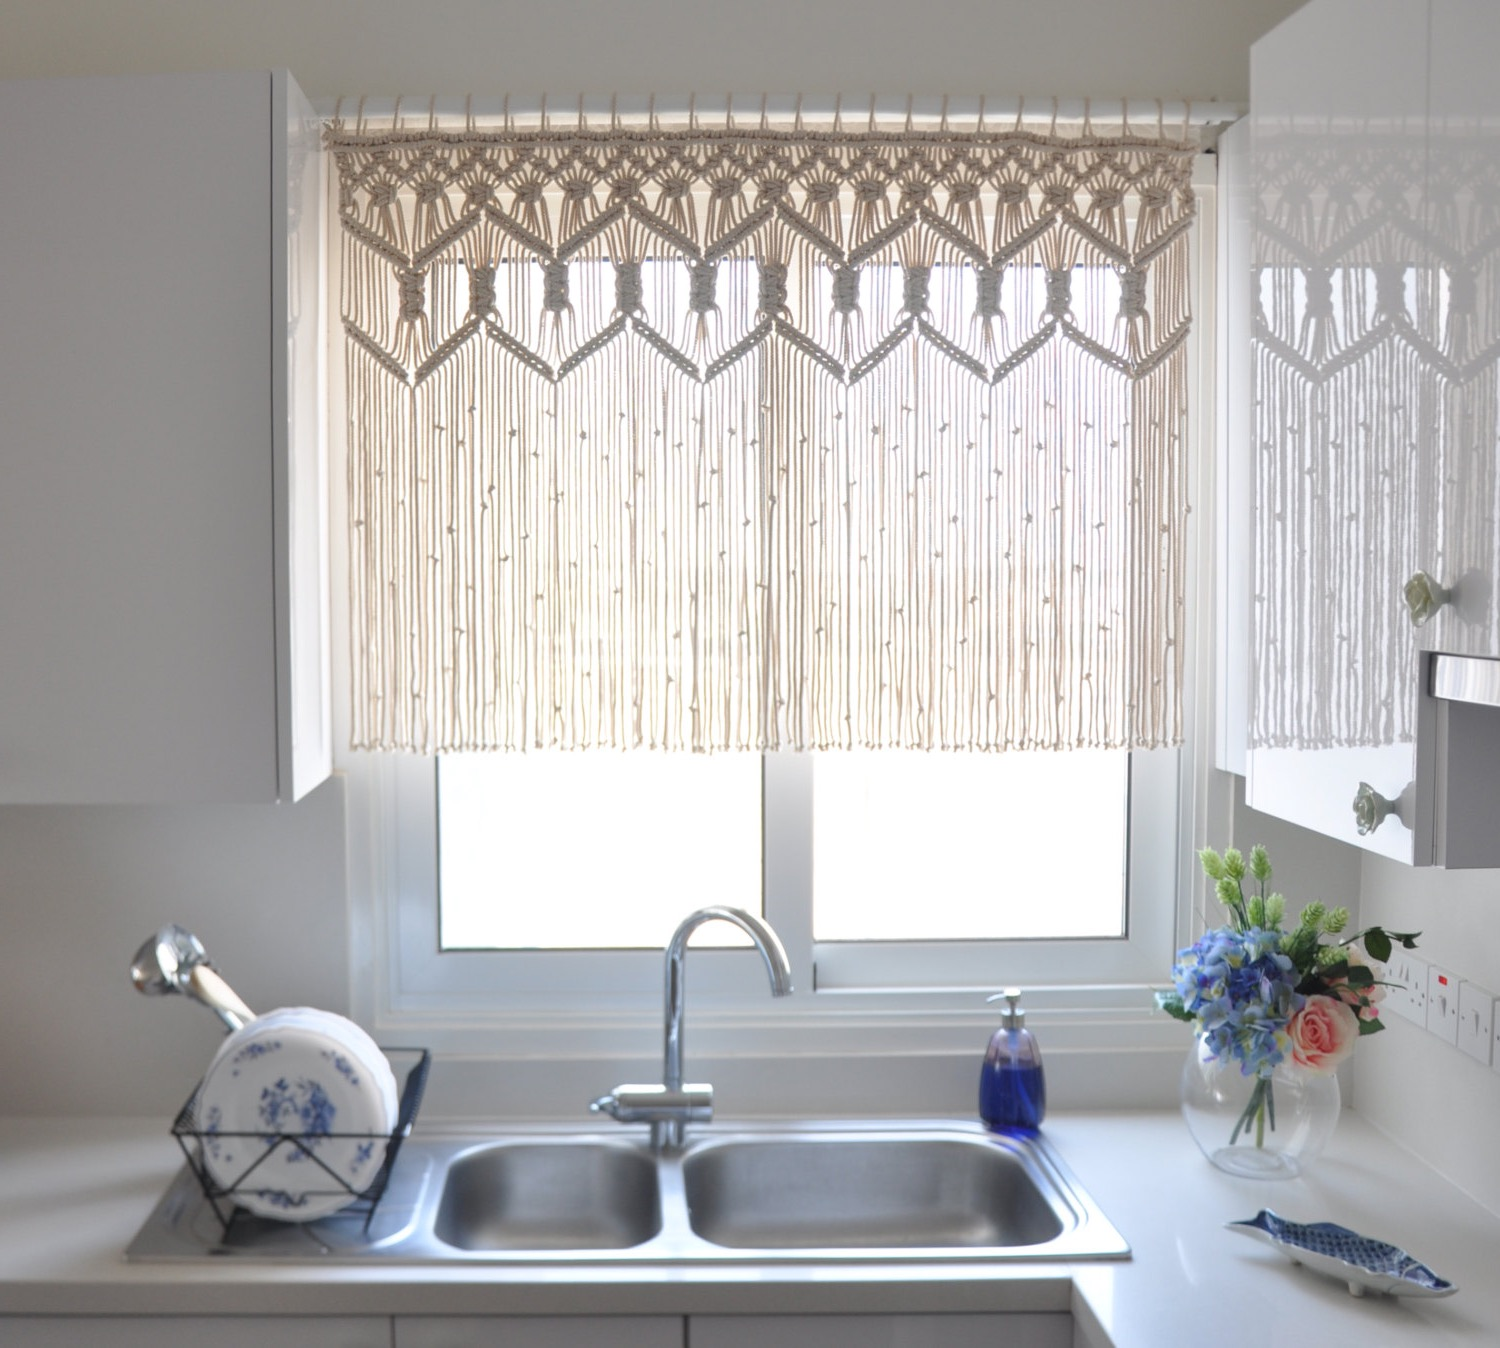 Custom Kitchen Macrame Curtains (Image 3 of 12)